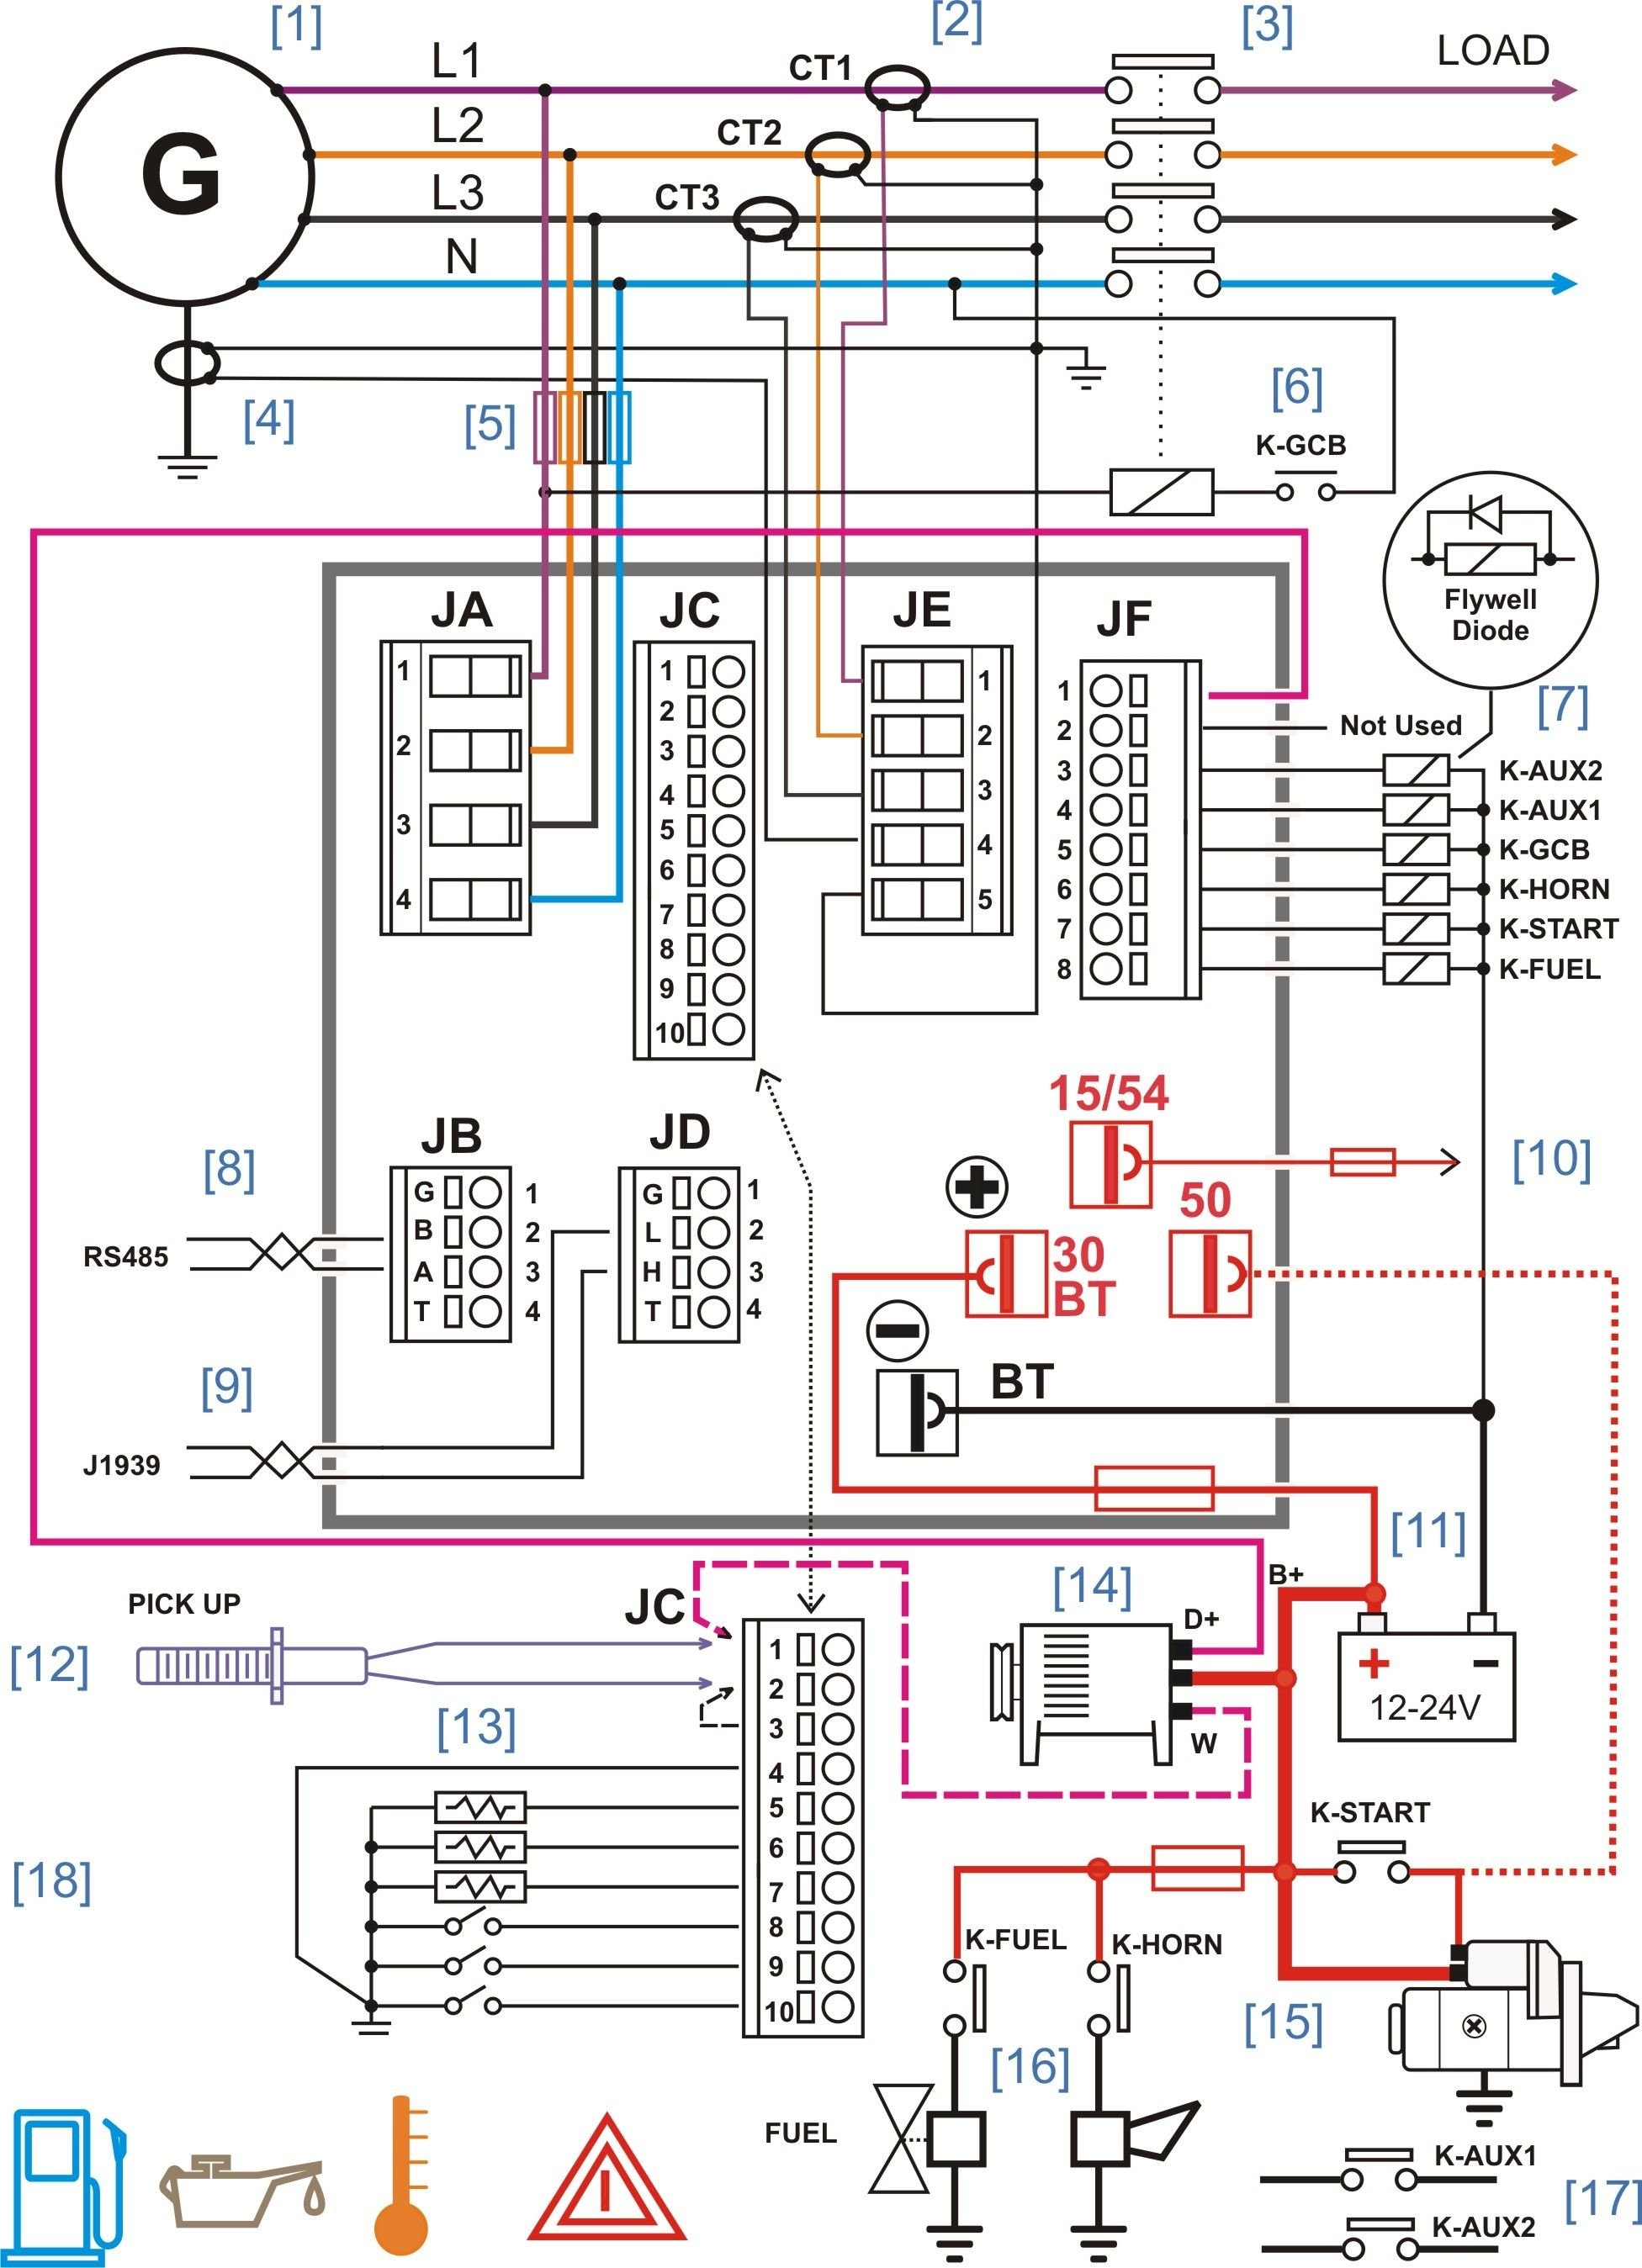 magnetek power converter 6345 wiring diagram free wiring. Black Bedroom Furniture Sets. Home Design Ideas